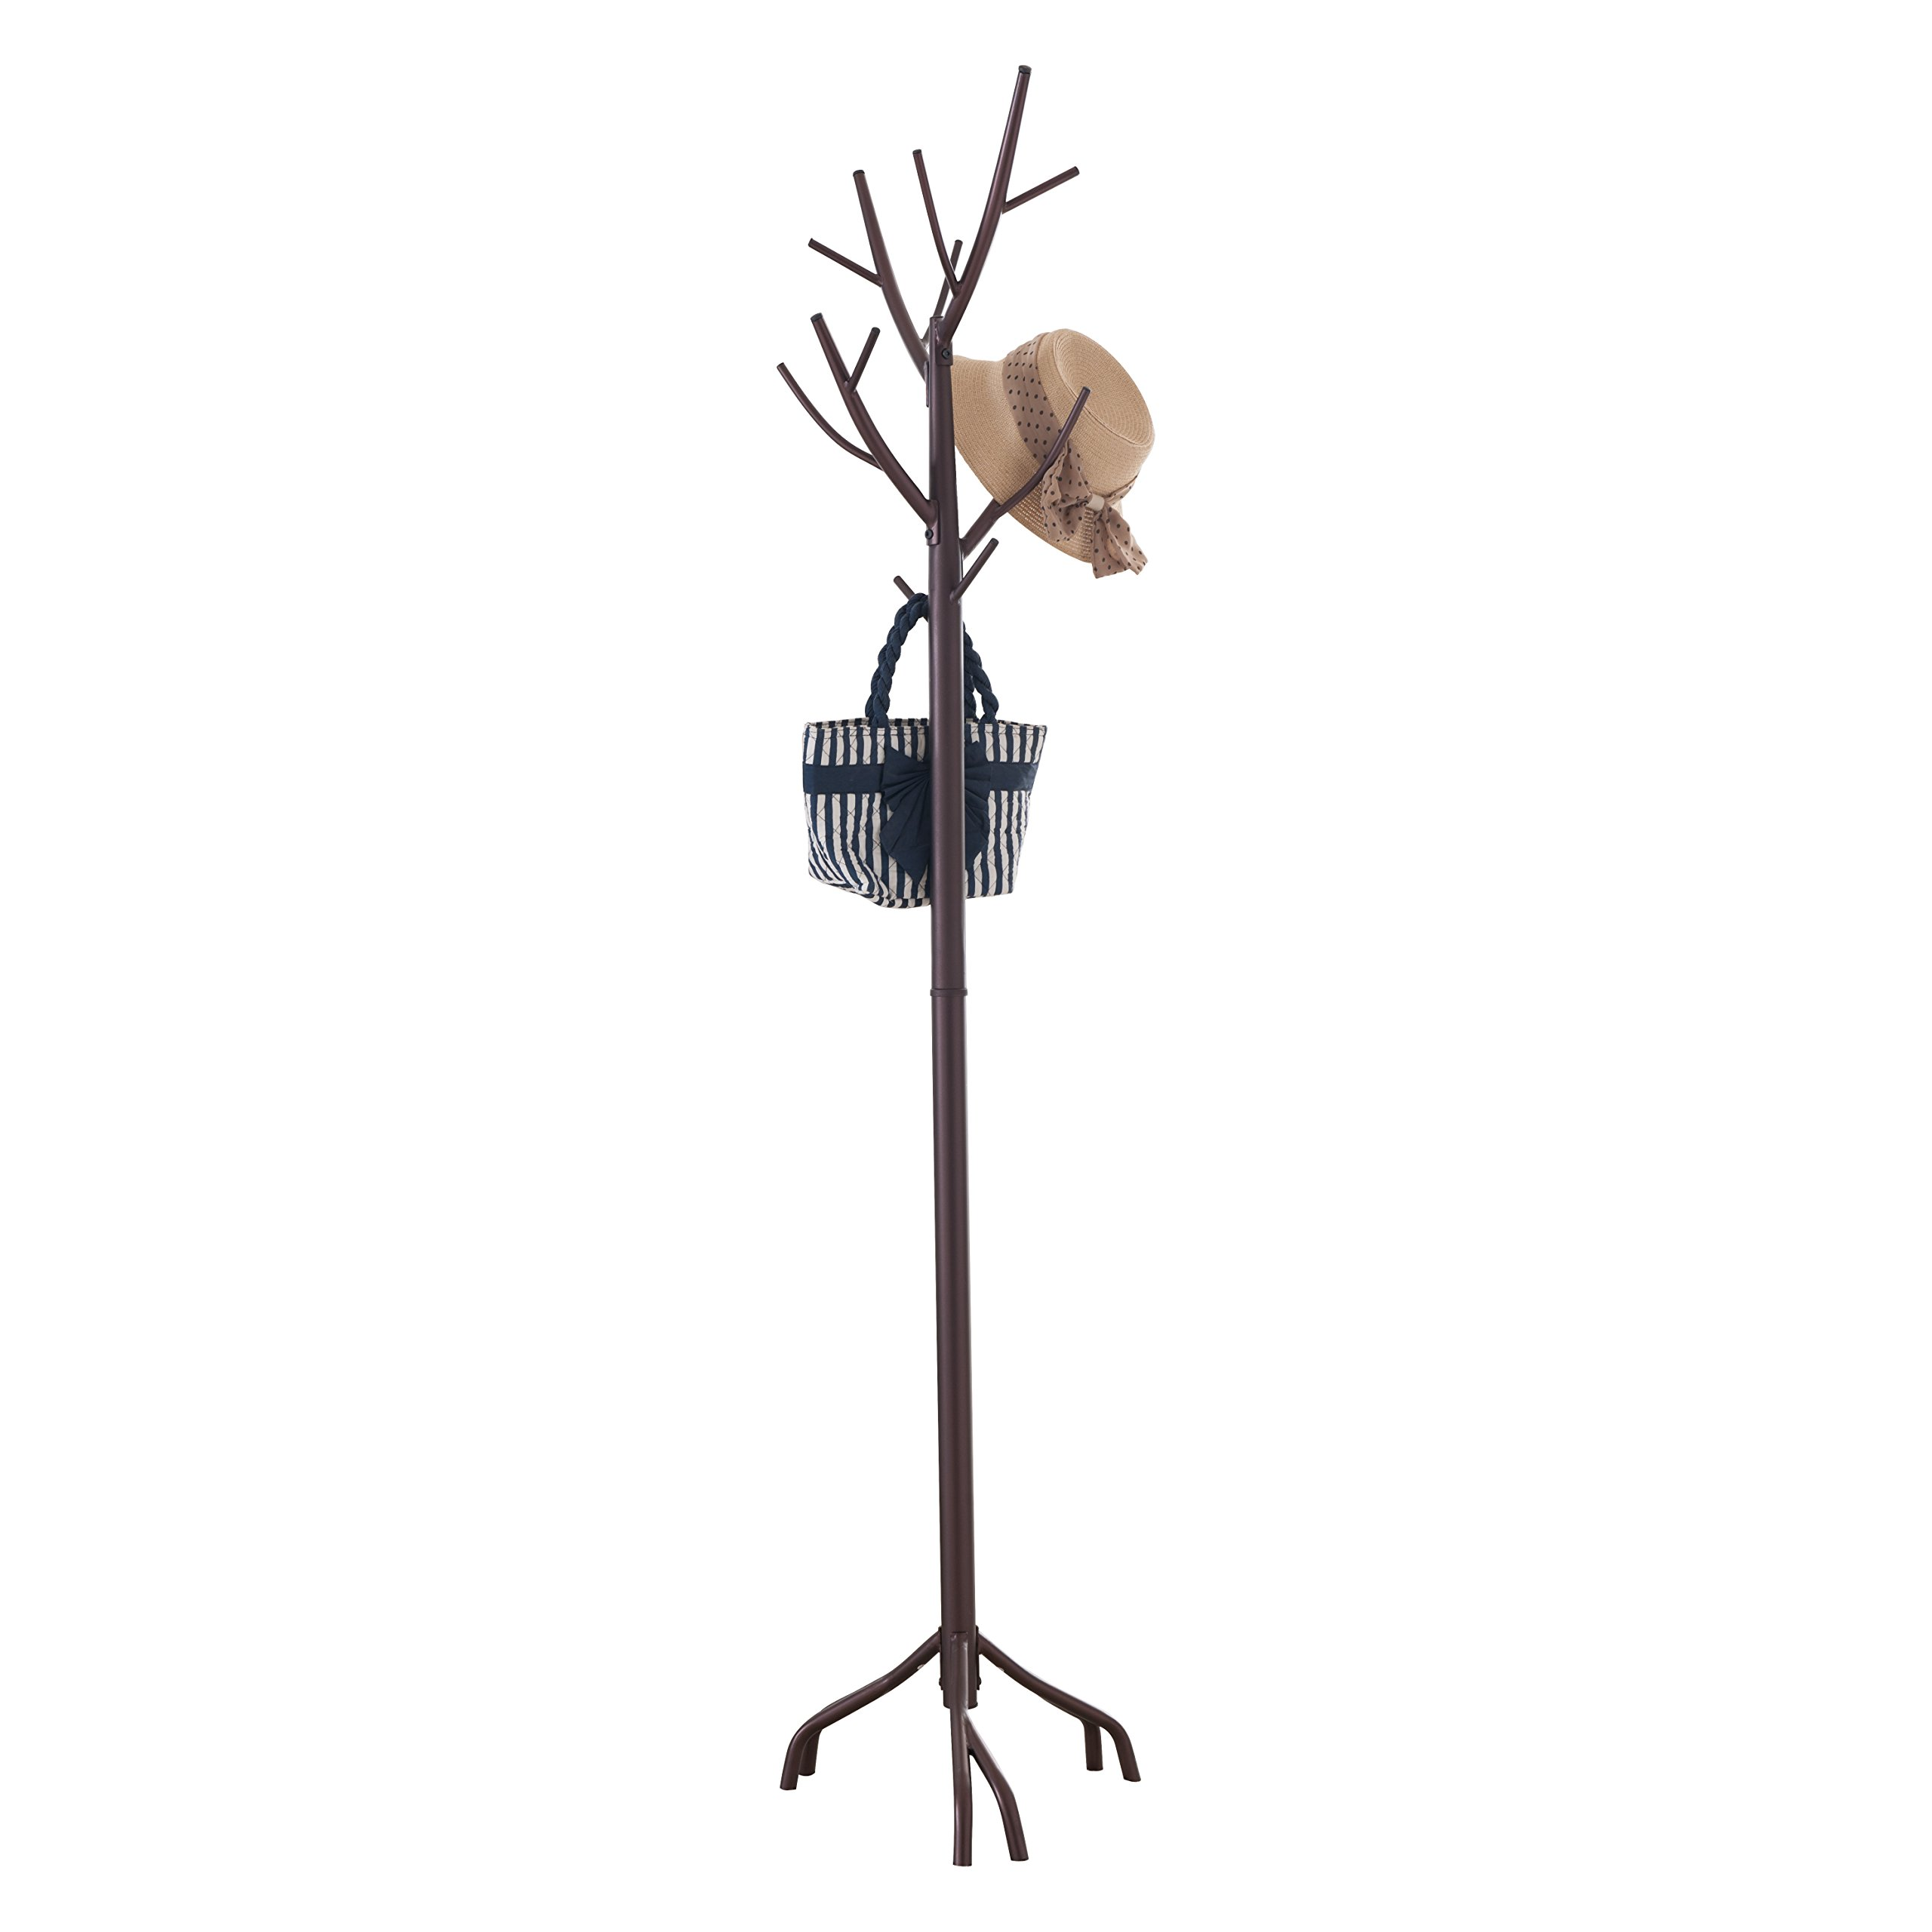 Pilaster Designs - Bronze Finish Metal Hall Tree Coat & Hat Rack with Branches